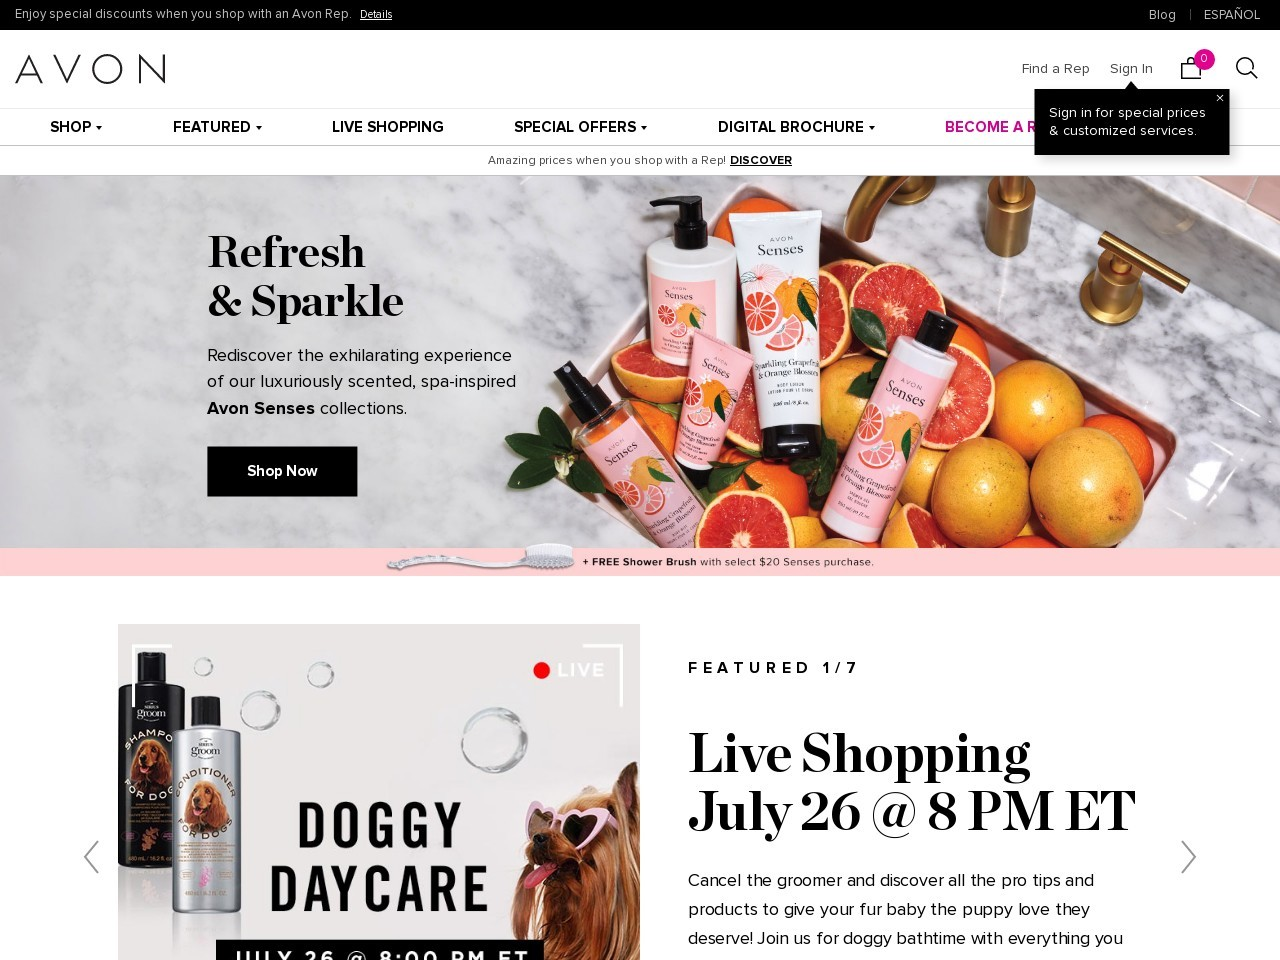 https://www.avon.com/sweepstakes/weekend-traveler-sweeps